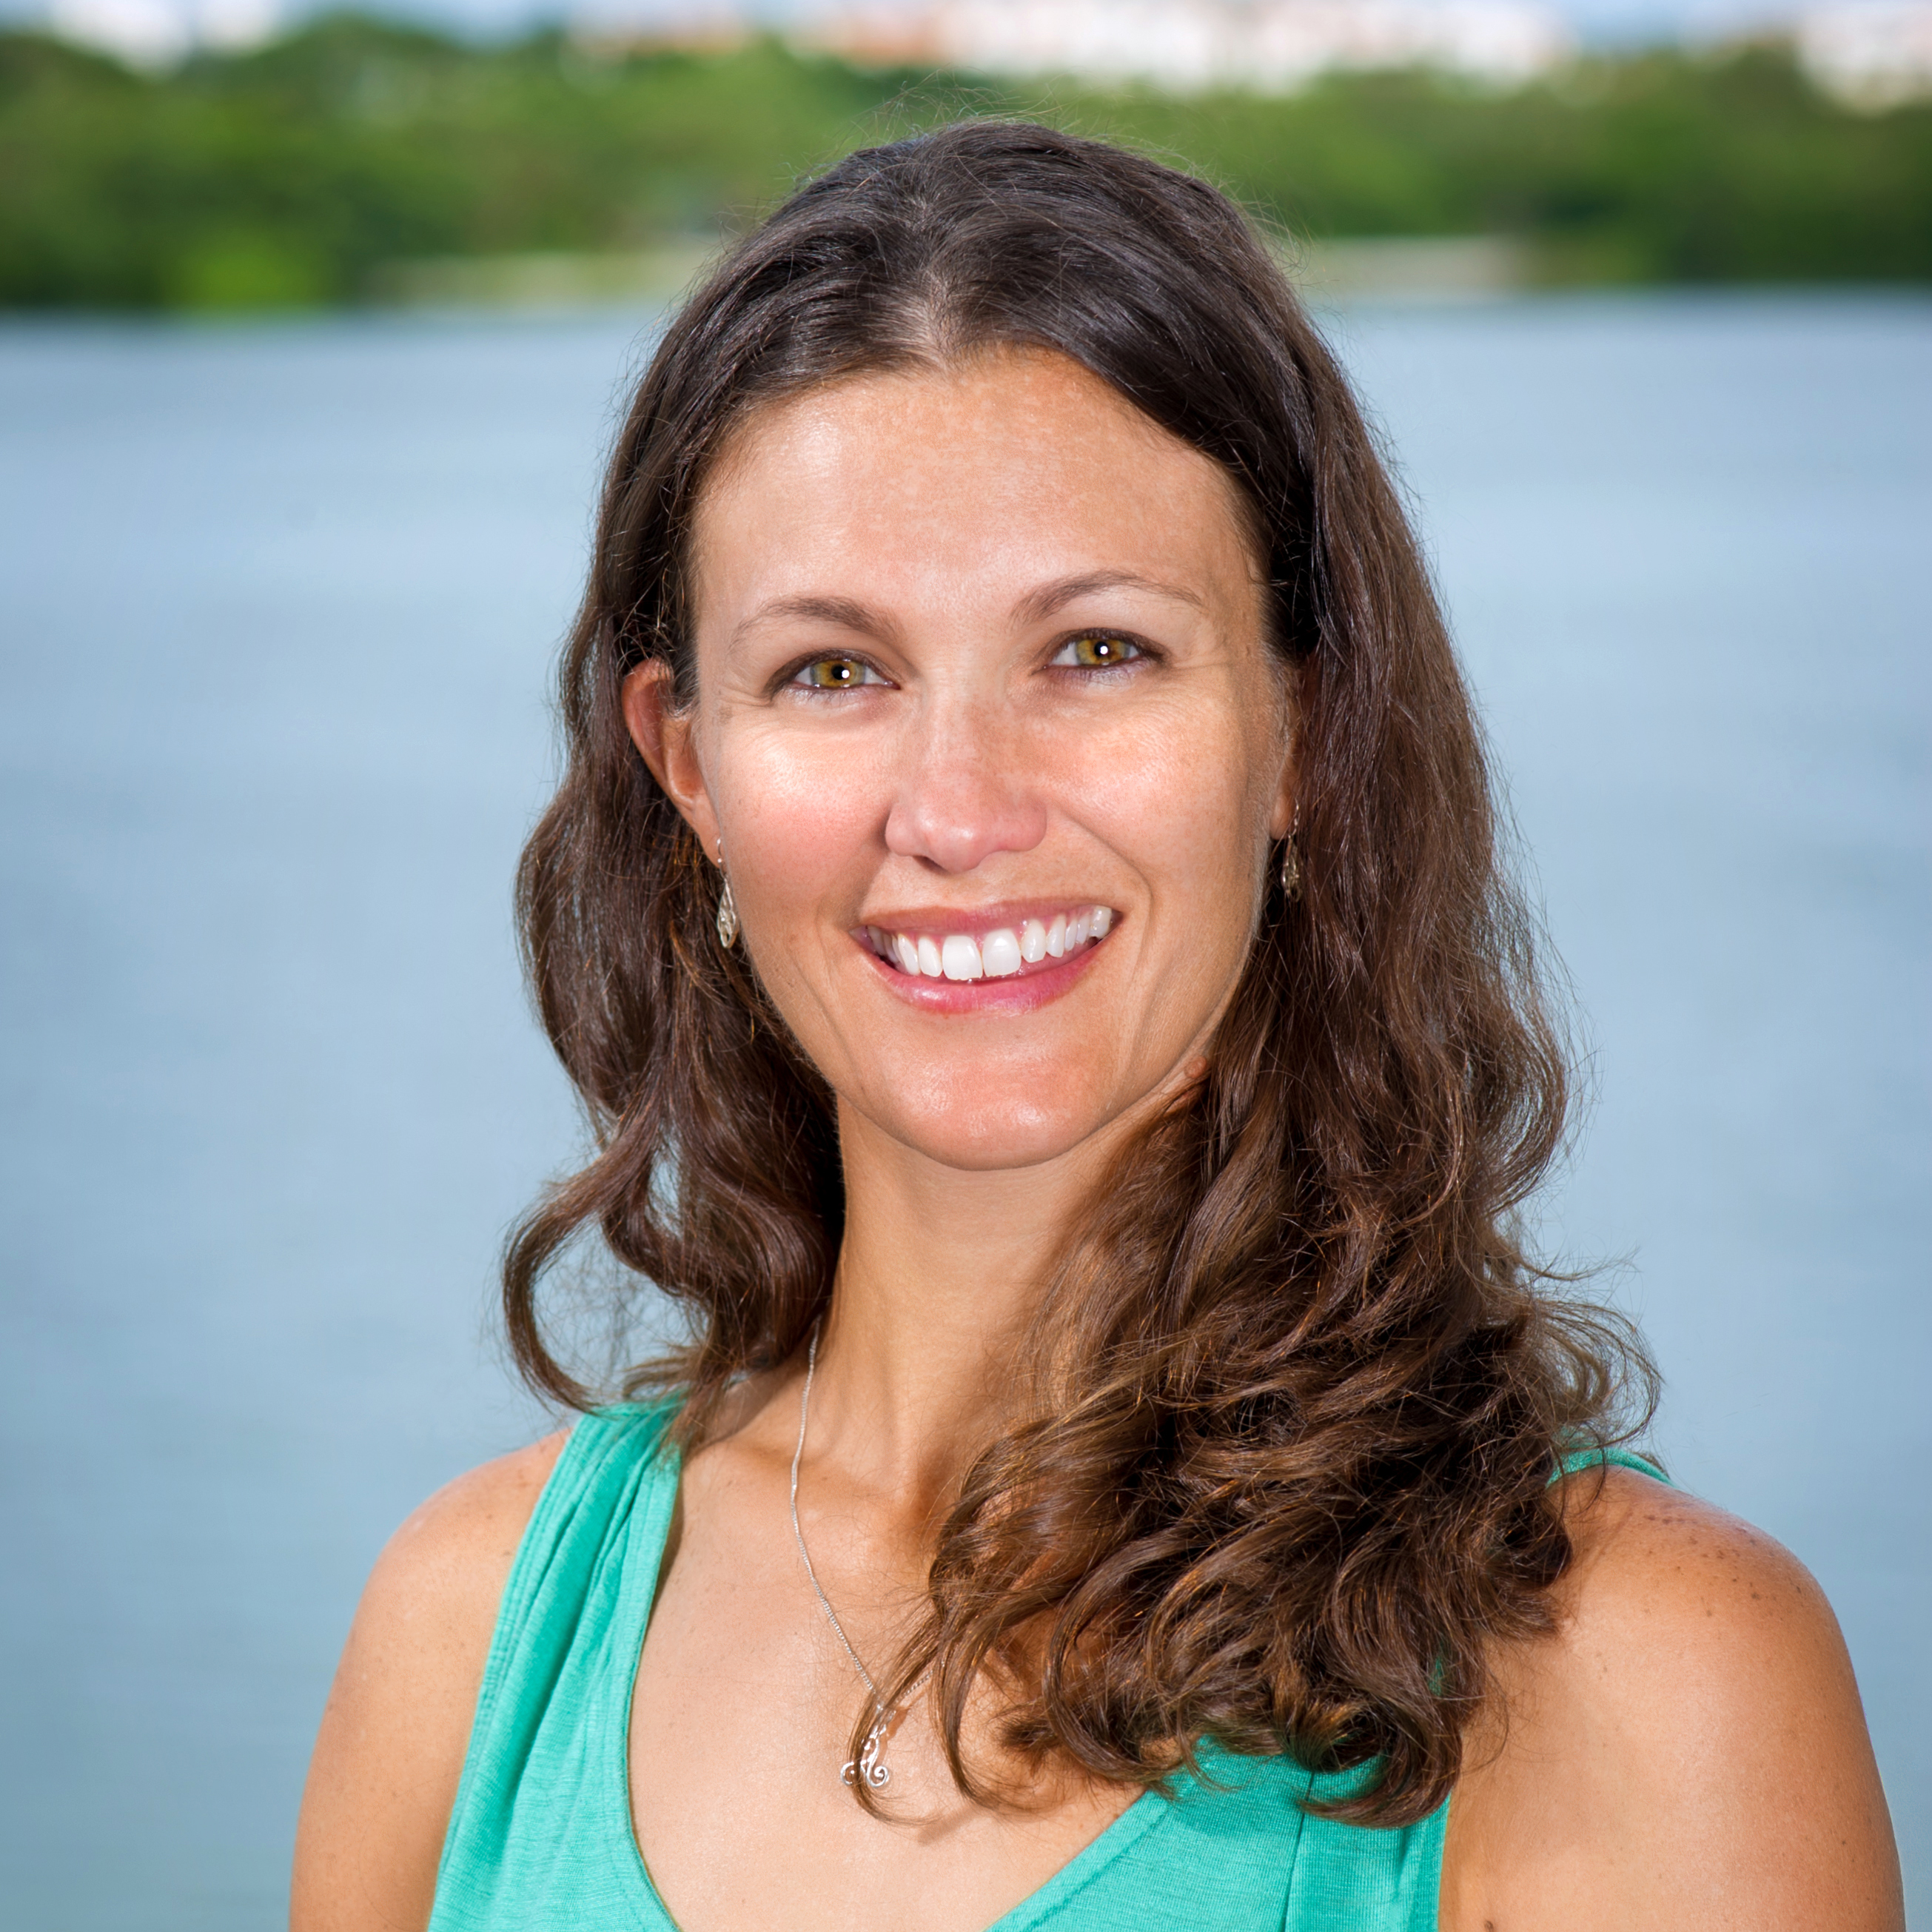 Dr. Emily Hall studies ocean acidification at Mote.